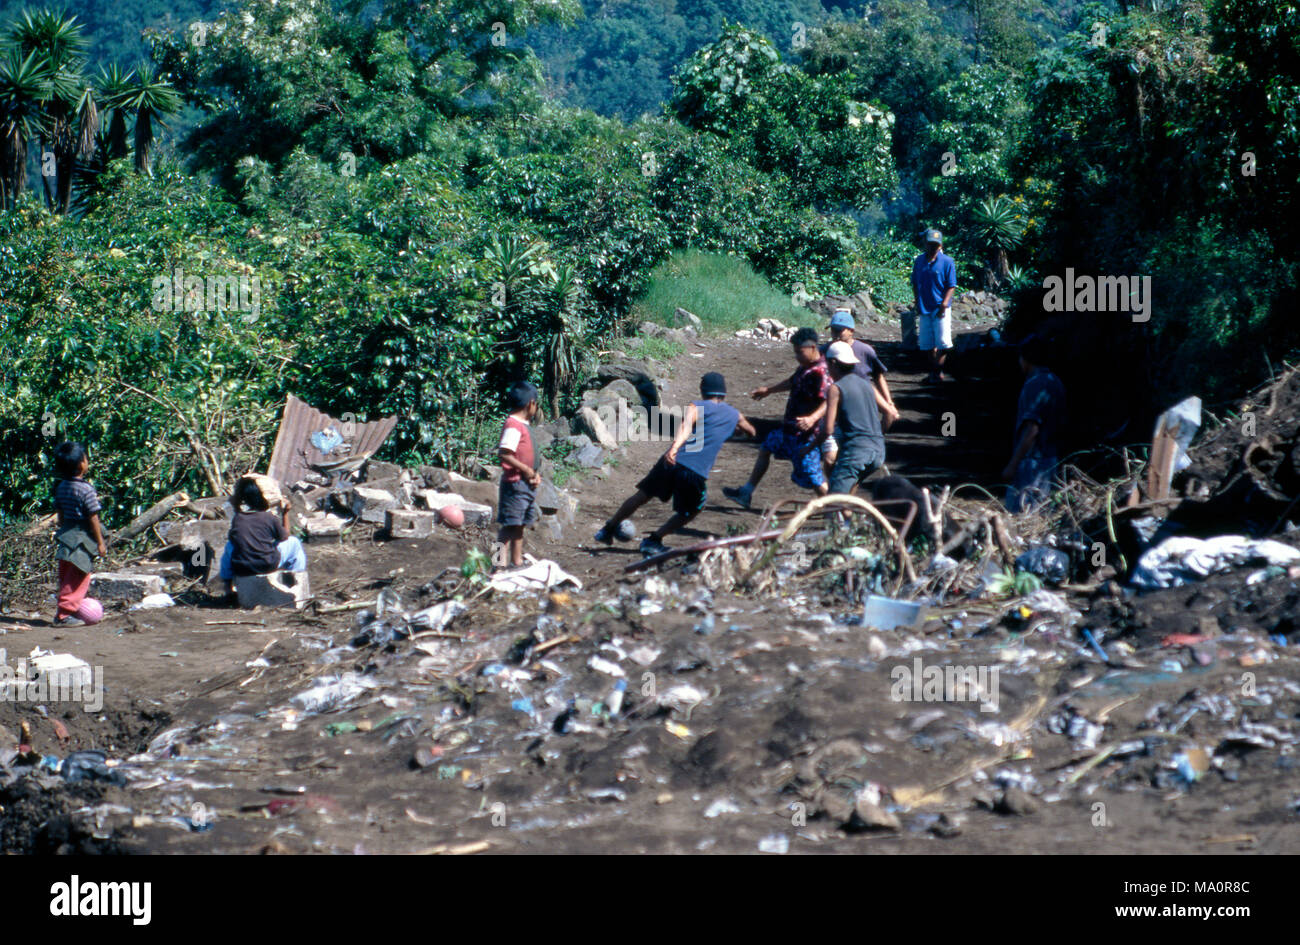 Indigenous Tz'utujil Mayan boys playing football (soccer) at a rubbish dump (garbage heap) in San Lucas Tolimán, Guatemala. - Stock Image